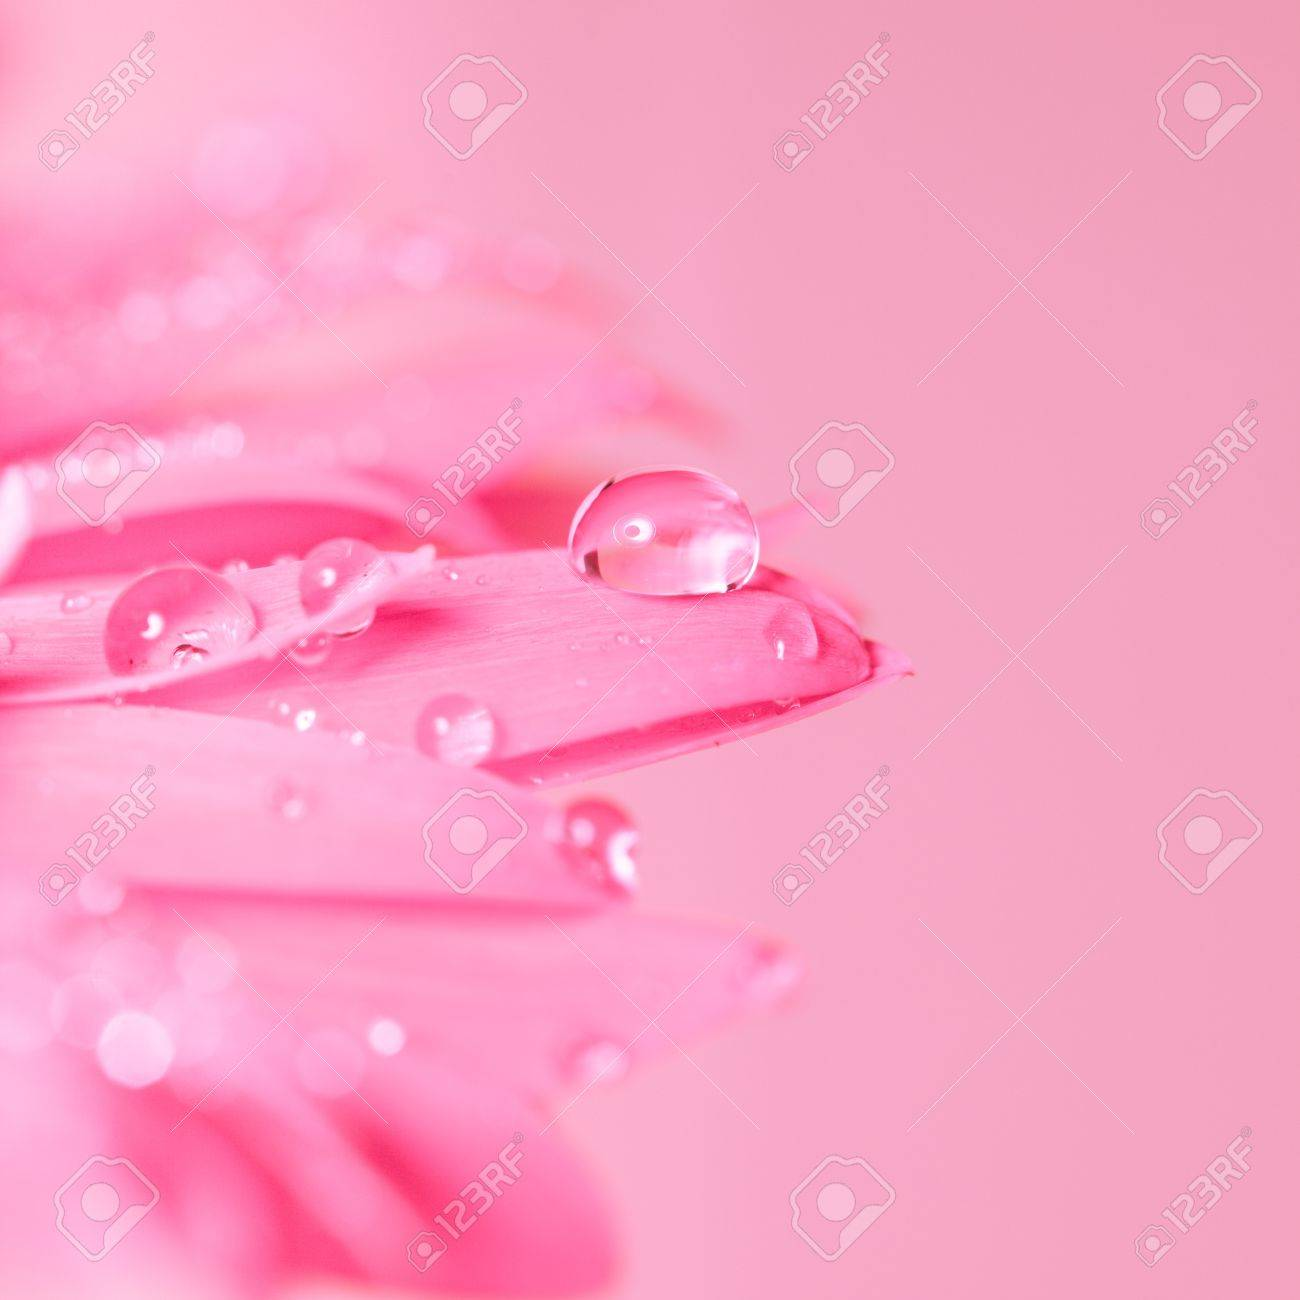 Water Drop On The Pink Flower Close Up Fragility Concept Stock